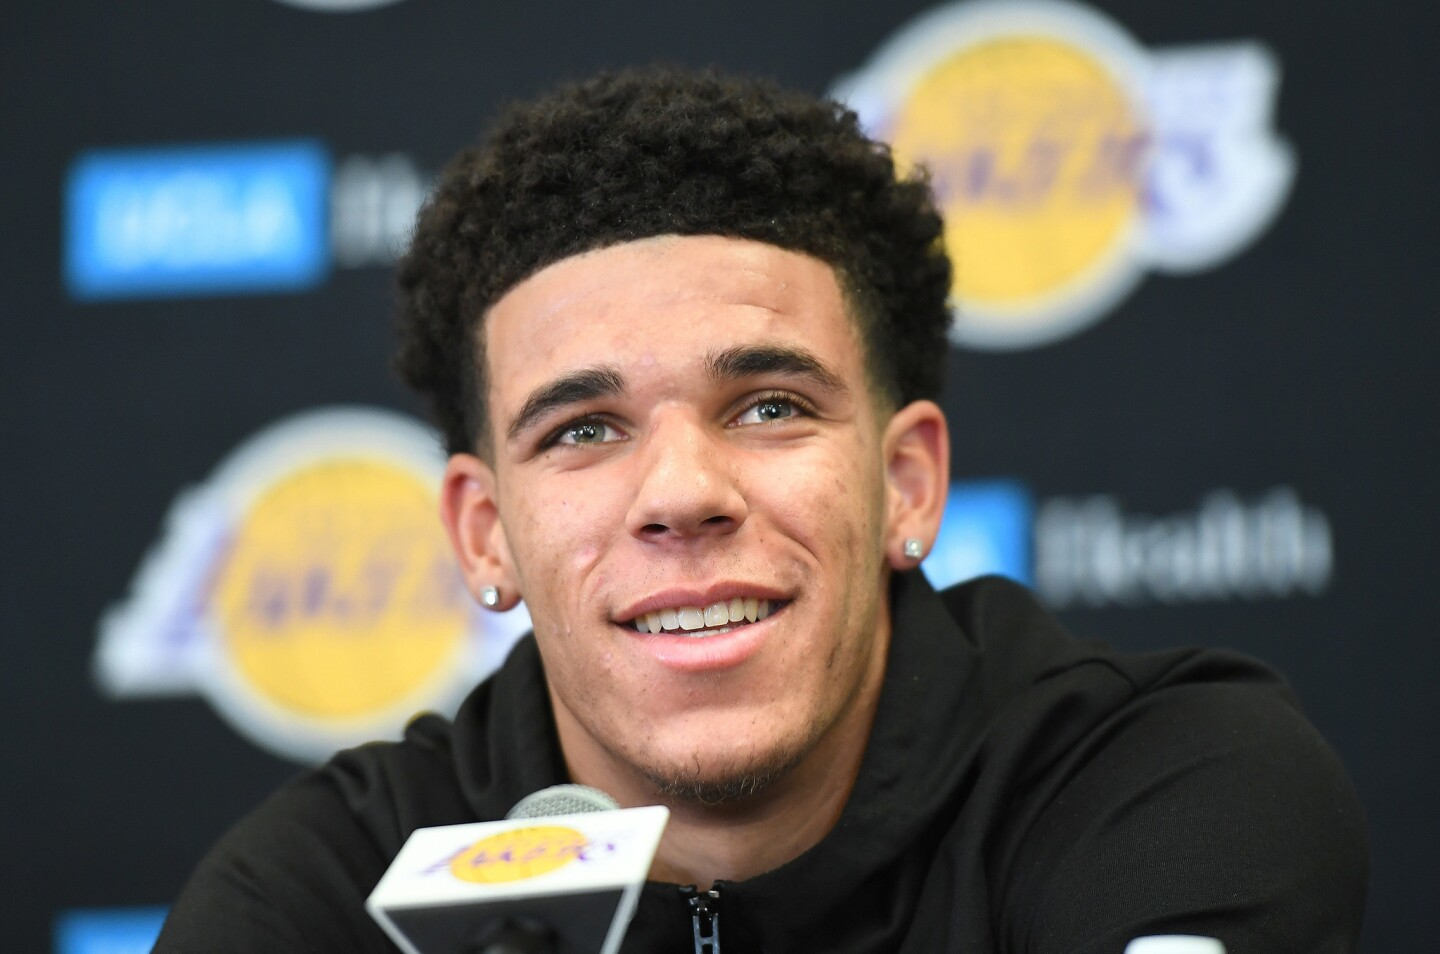 Lakers first-round draft pick Lonzo Ball addresses the media during his introductory news conference at the team's training facility in El Segundo.